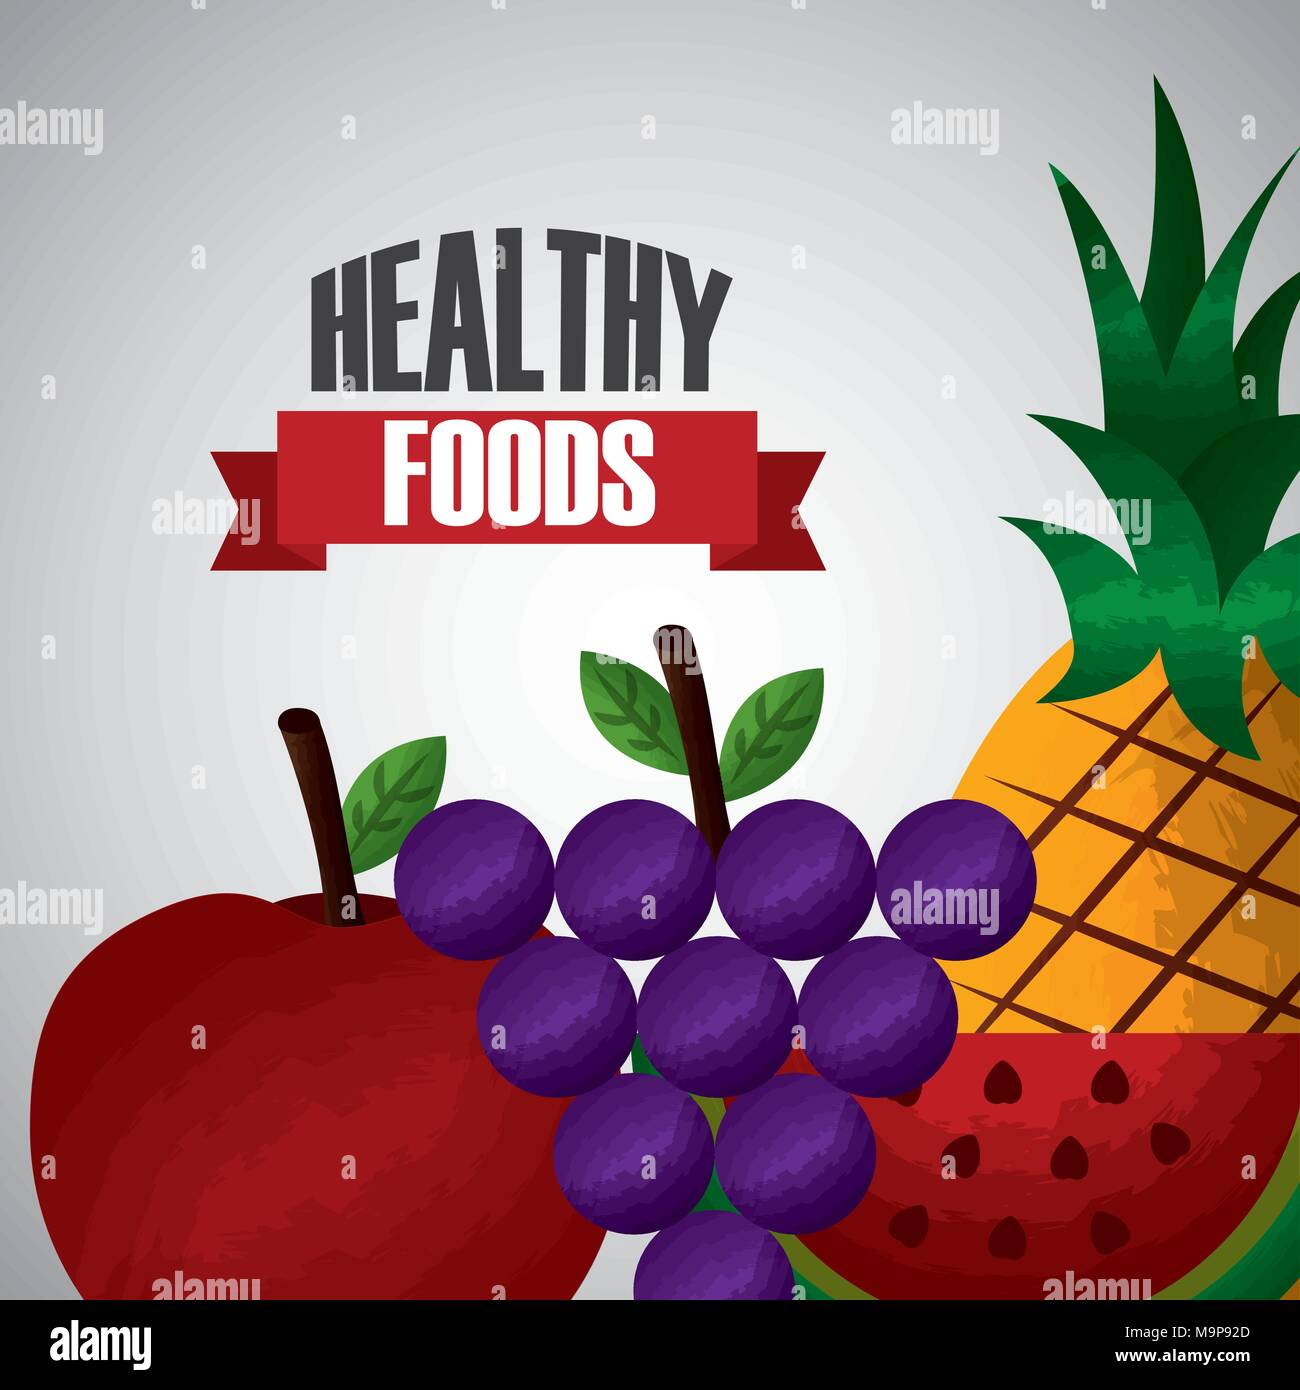 healthy foods dieting - Stock Image